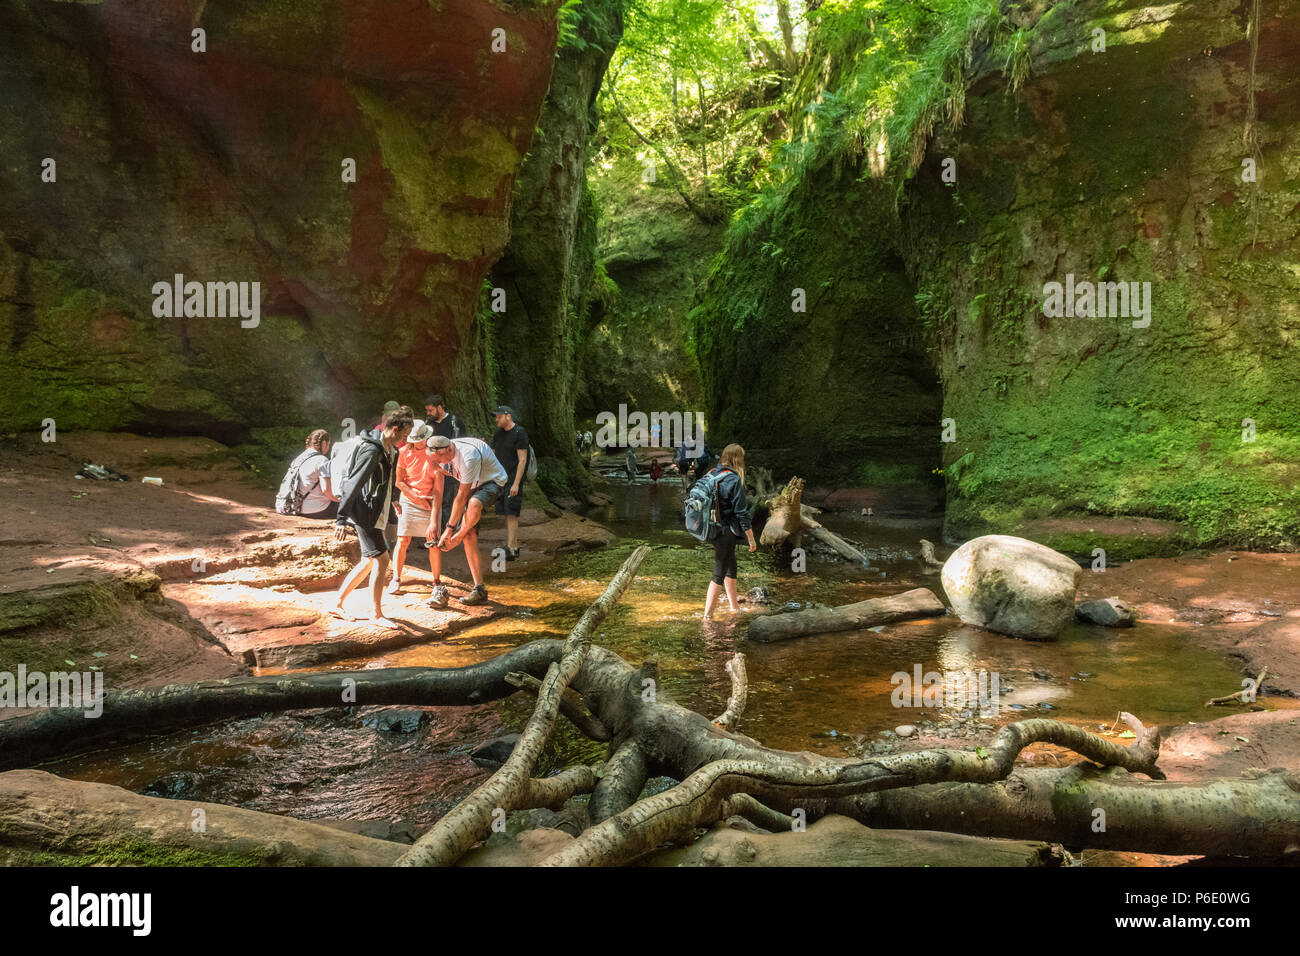 Sterlingshire, UK, 30 June 2018. Devil's Pulpit, Finnich Glen, Stirlingshire, Scotland, UK - 30 June 2018: uk weather - brilliant sunshine illuminating Finnich Glen in Stirlingshire.  There has been a marked increase in visitors to the beauty spot just outside Killearn following it's use as a film location in Outlander and other films.  Unfortunately however, due to the nature of the site this has led to a rise in emergency call outs and problems with litter and dangerous parking on nearby roads. - Stock Image